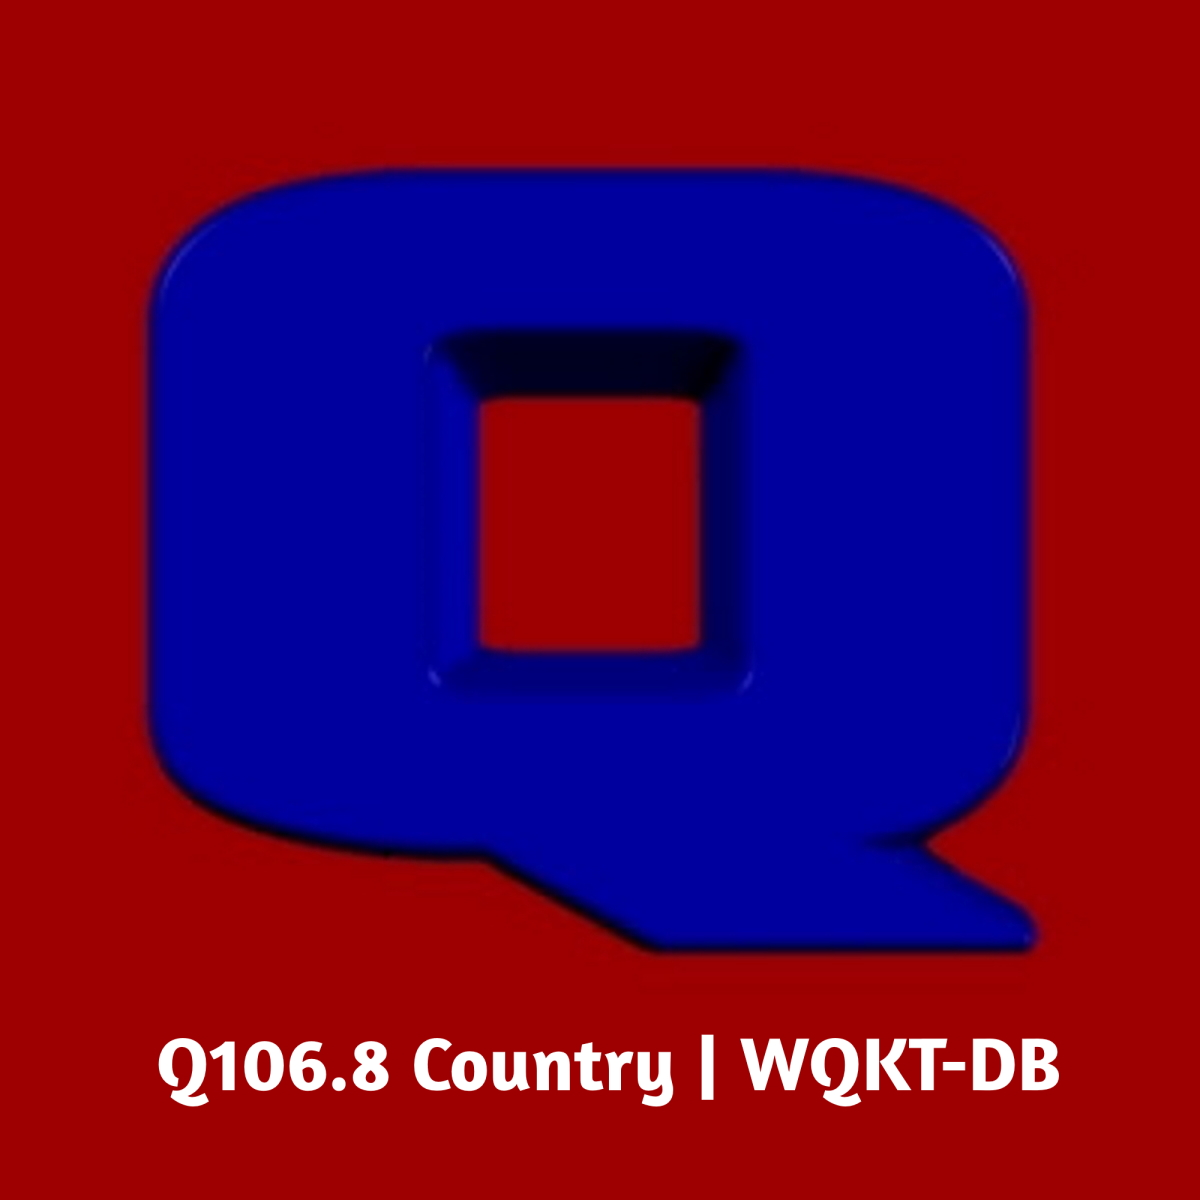 Art for Thanks by Q106.8 Country | WQKT-DB